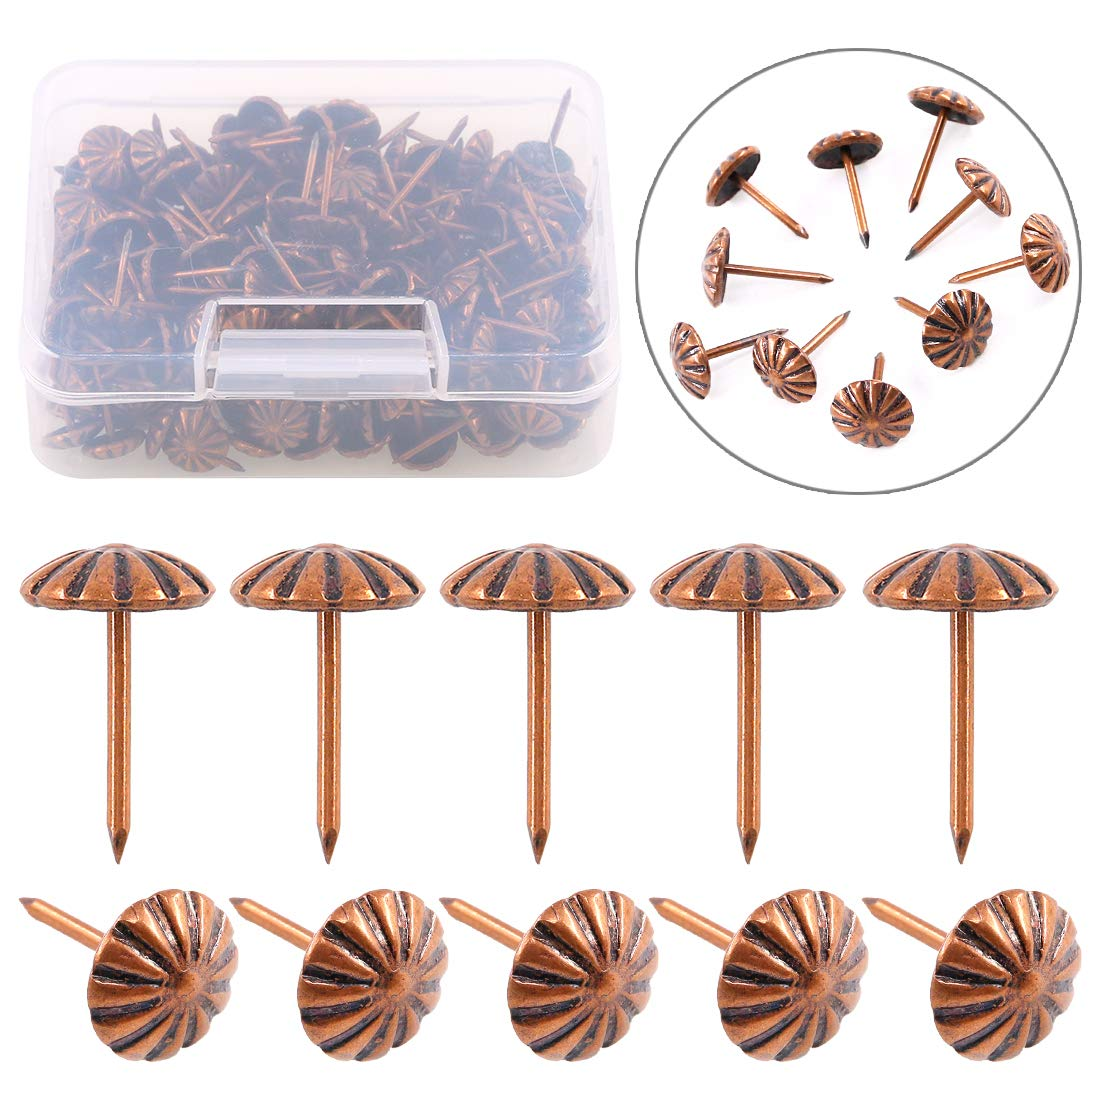 Swpeet 200Pcs 7 16 Flower Pattern Round Domed Head Upholstery Nails Pins Decorative Tacks Kit Antique Red Bronze Finish Nails Pins Tacks for Nickel Finish and Furniture DIY LE Reform